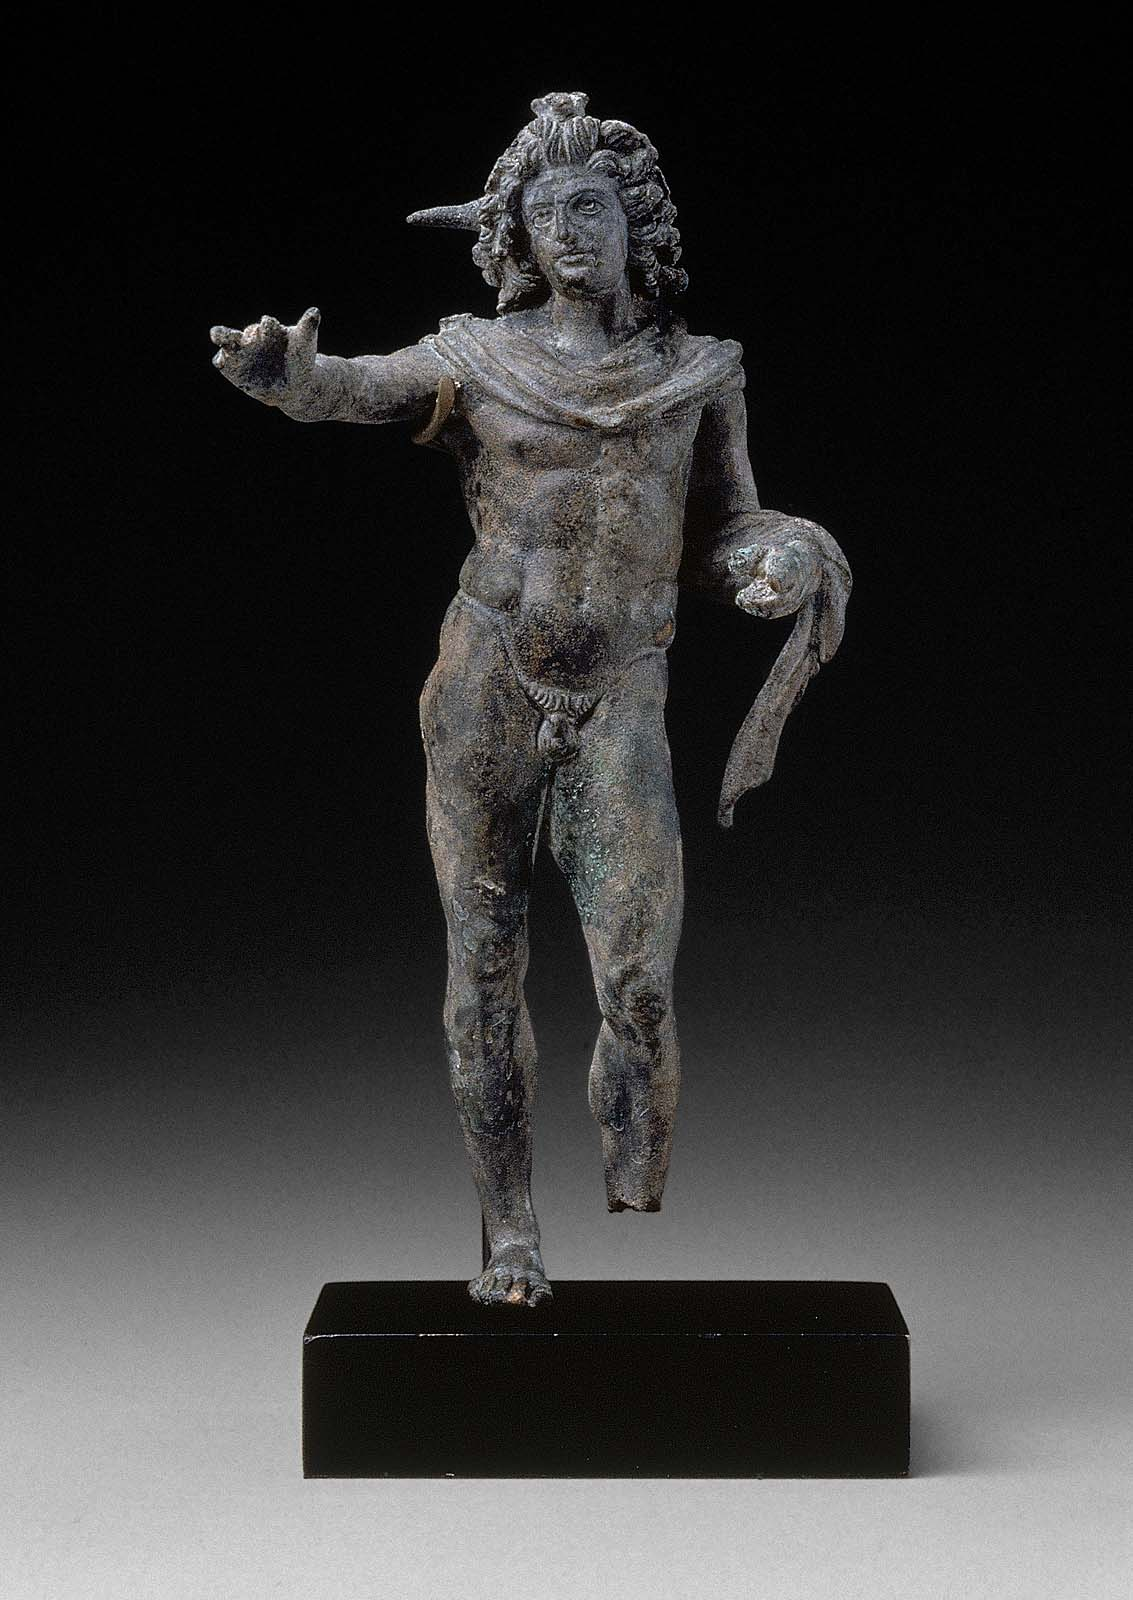 Statuette of Helios, the sun god | MFA for Educators